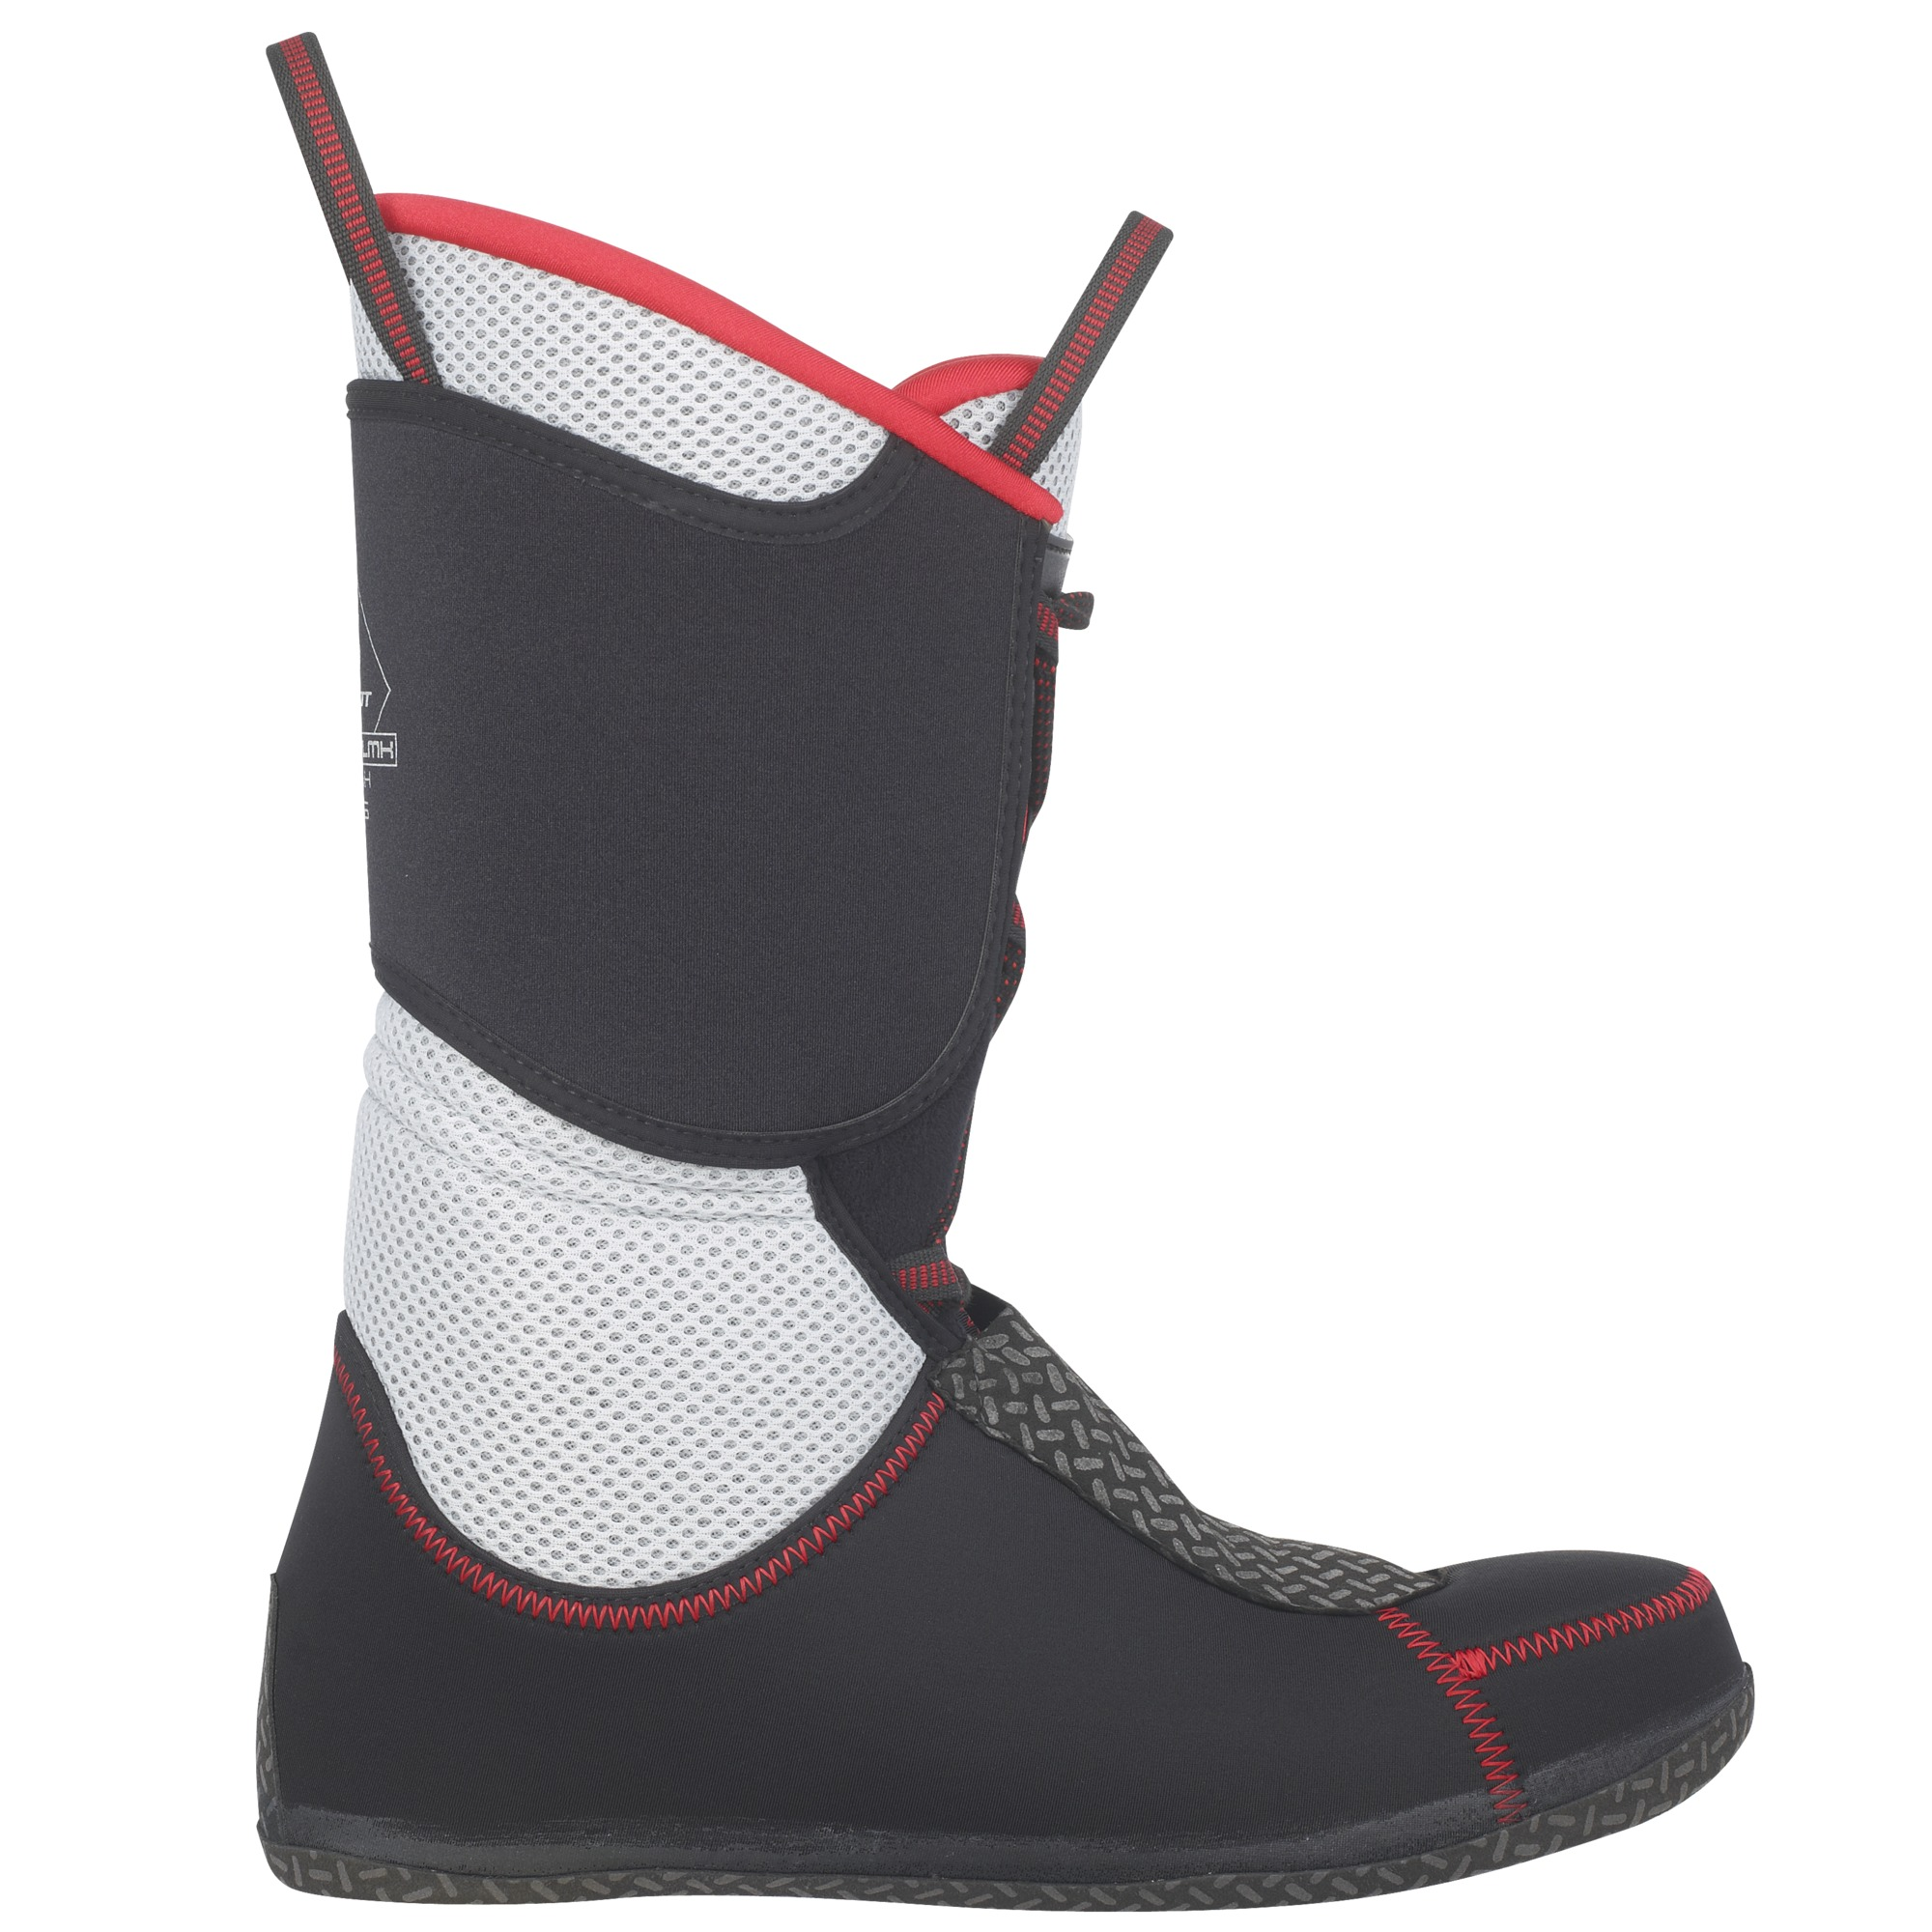 SCOTT Voodoo NTN Ski Boot